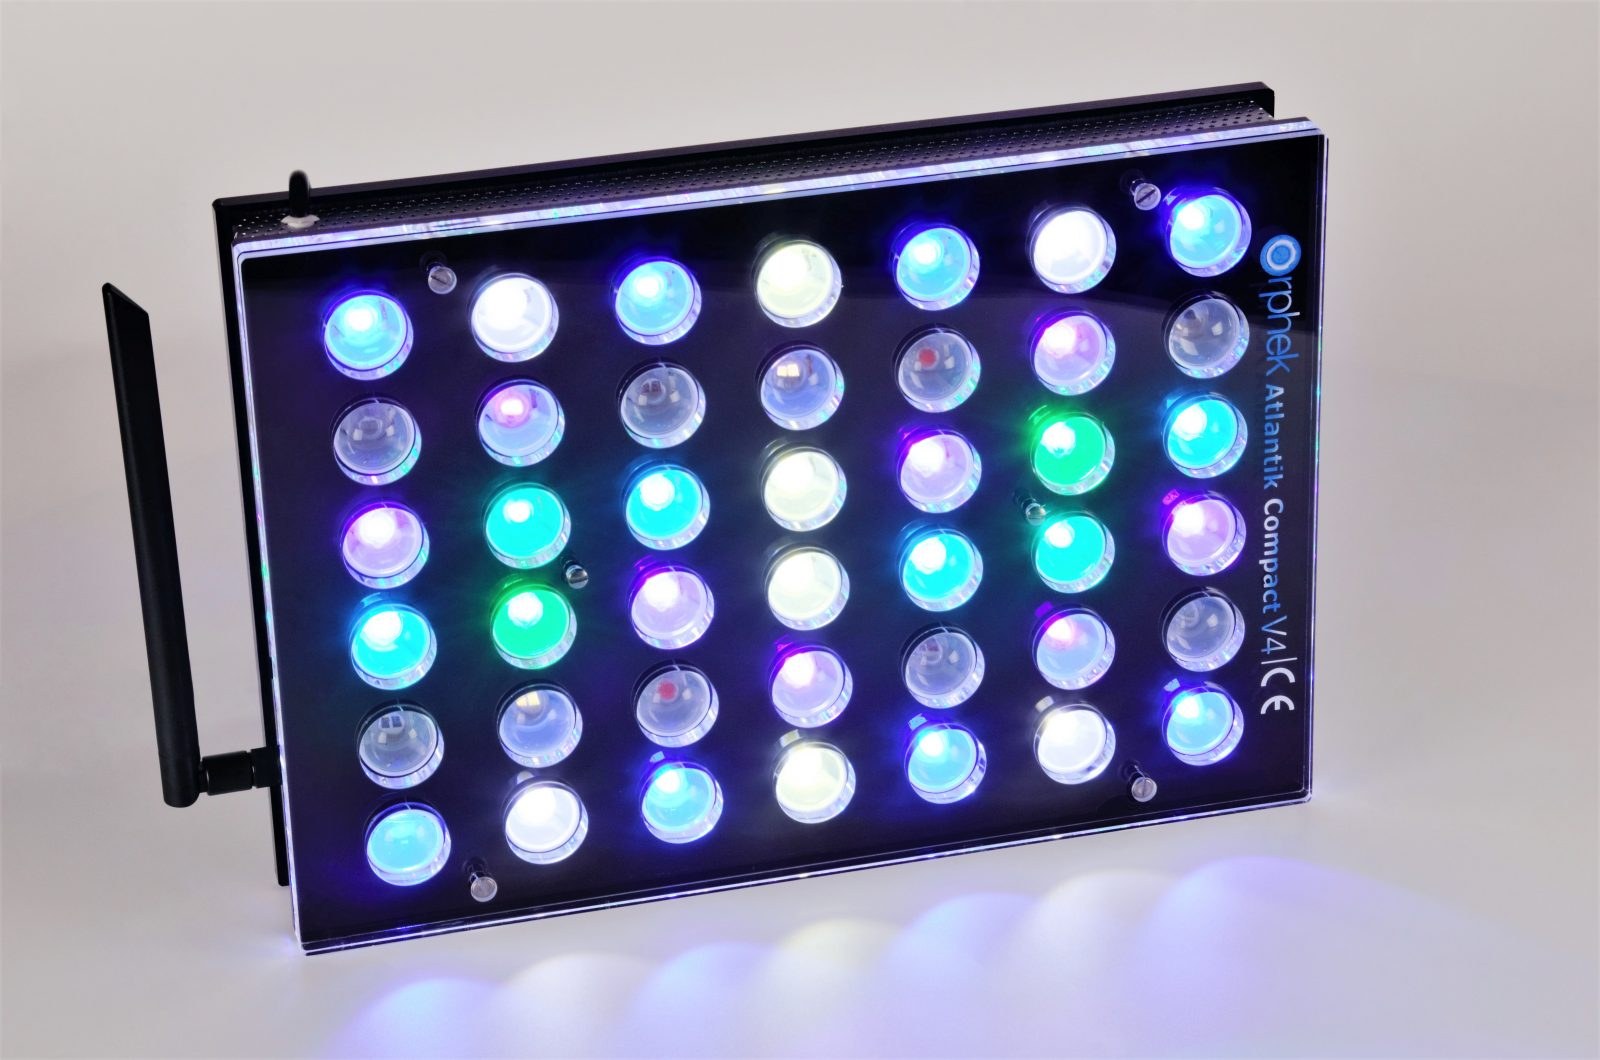 Orphek-Aquarium-LED-Beleuchtung-Atlantik -Compact-V4-light -on -channel 1 + 2 + 3